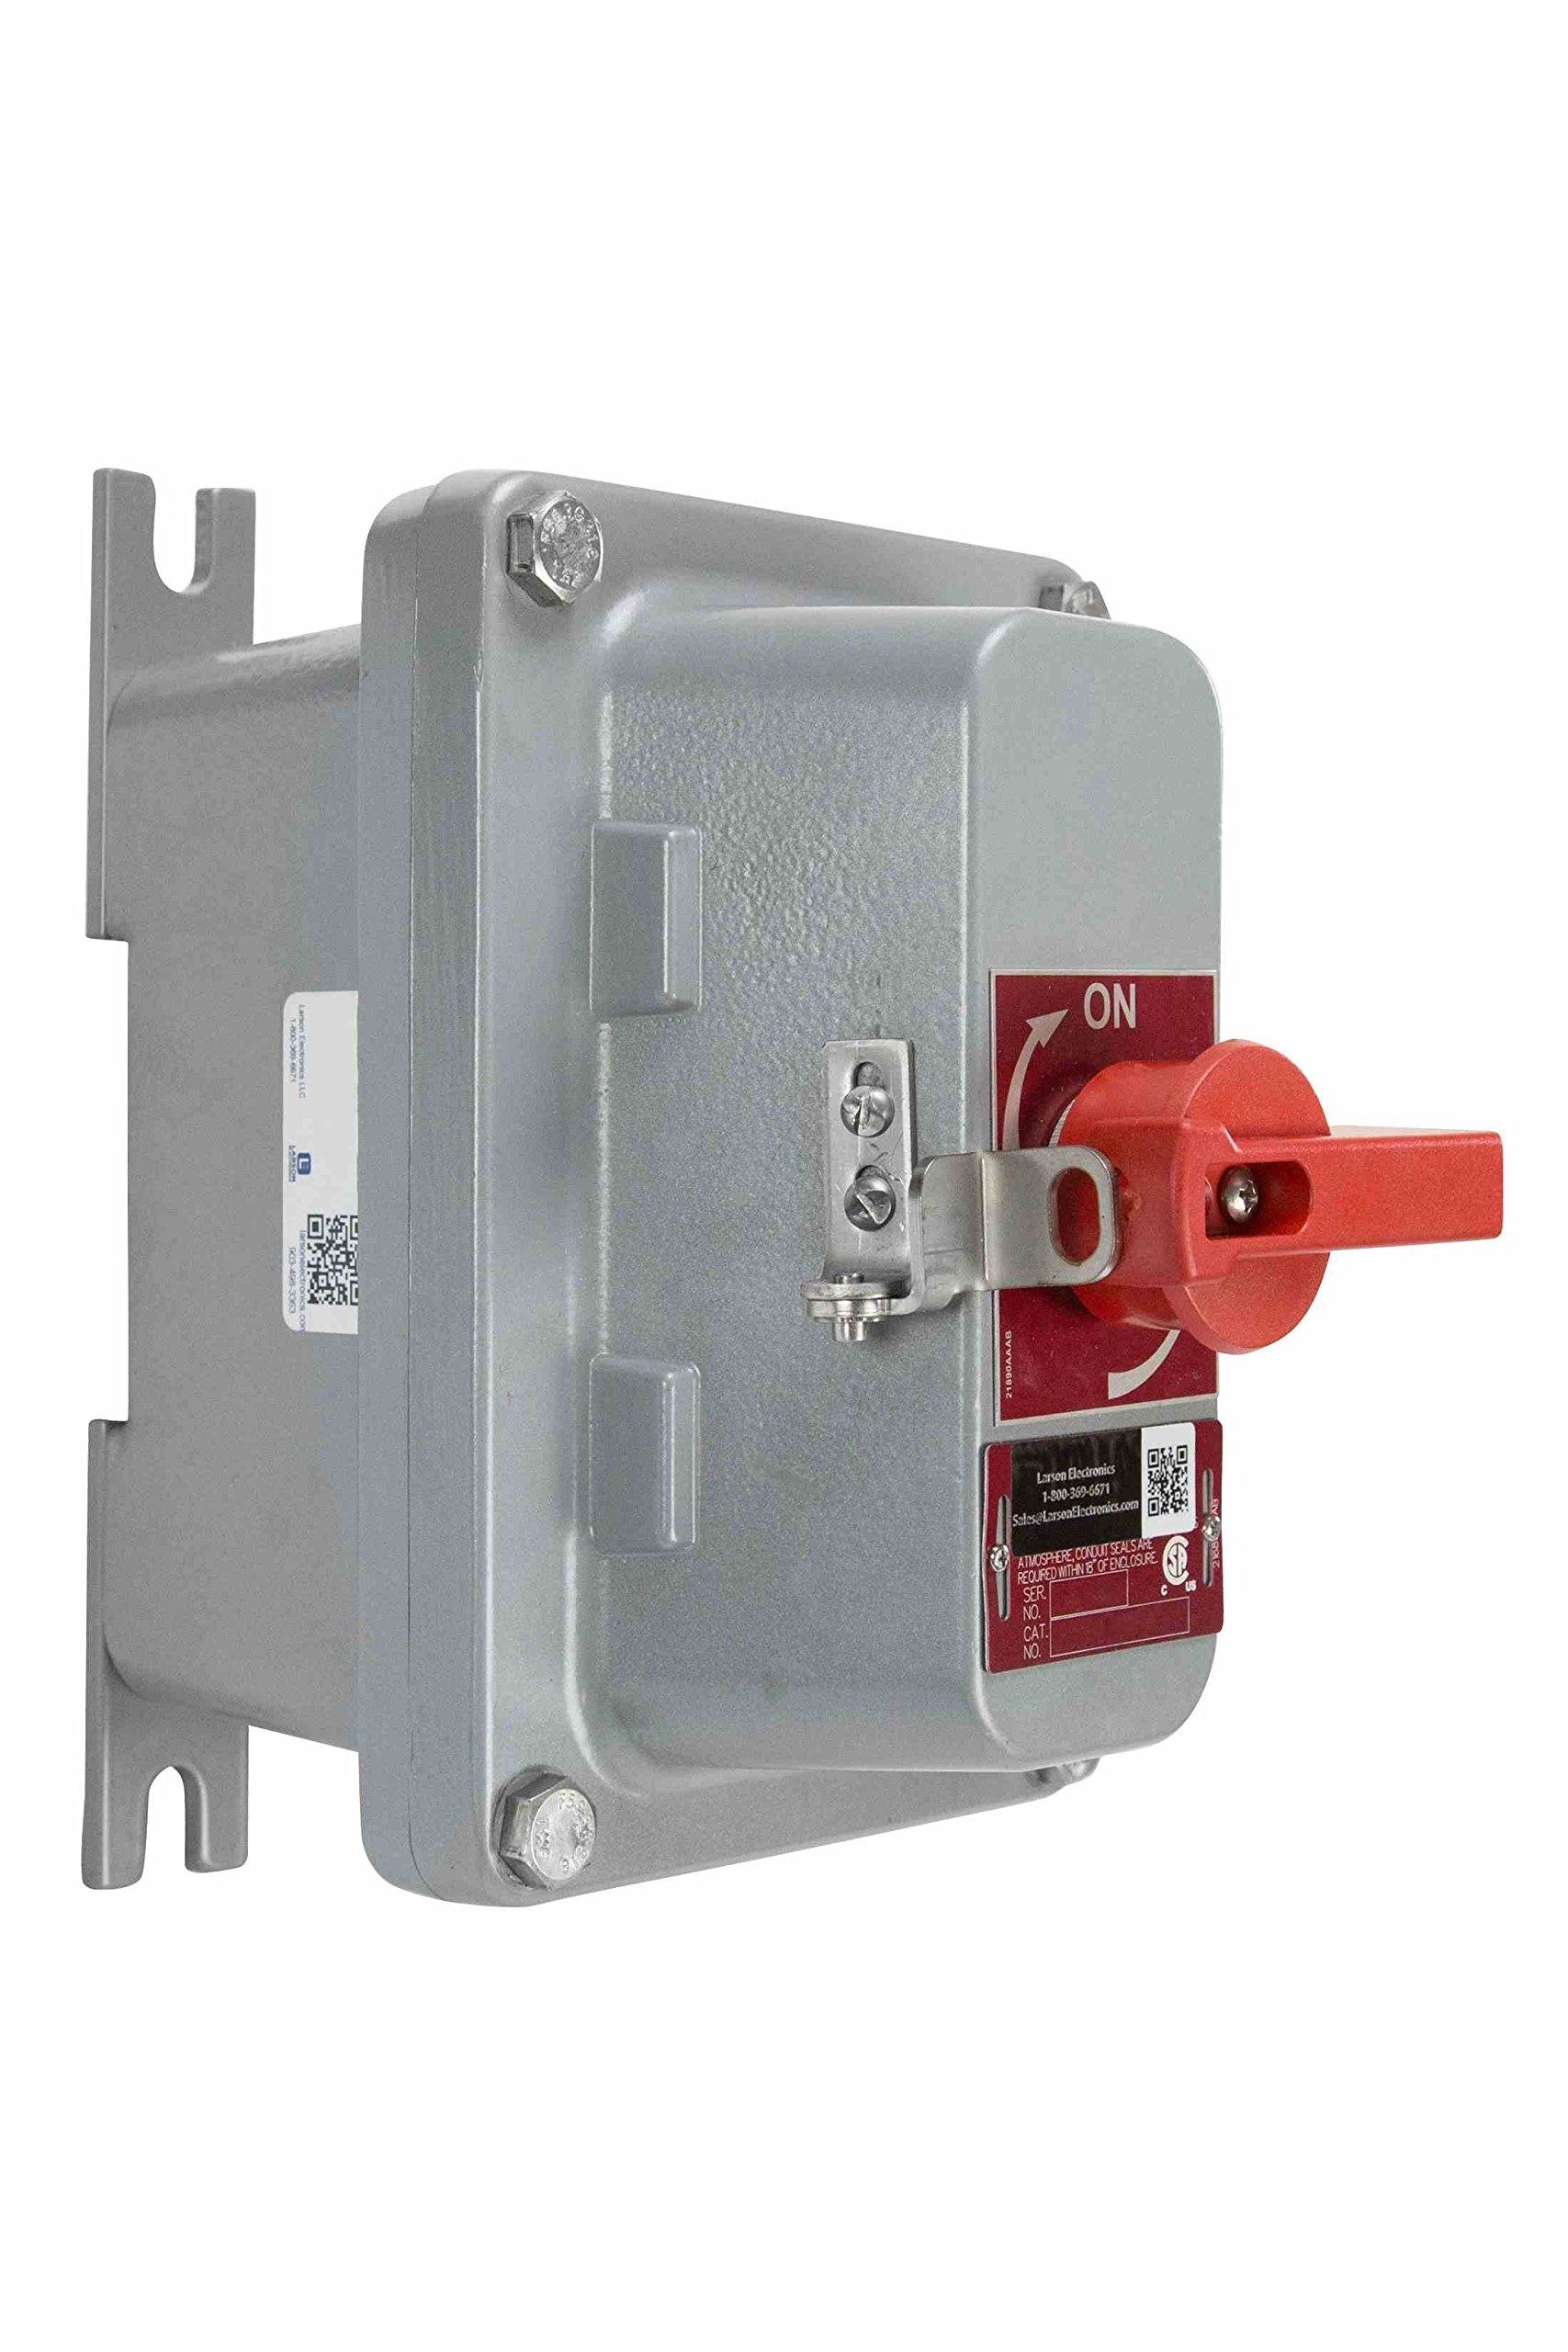 Three Phase Explosion Proof Switch - Non Fused - 20 Amps - Lock Out / Tag Out